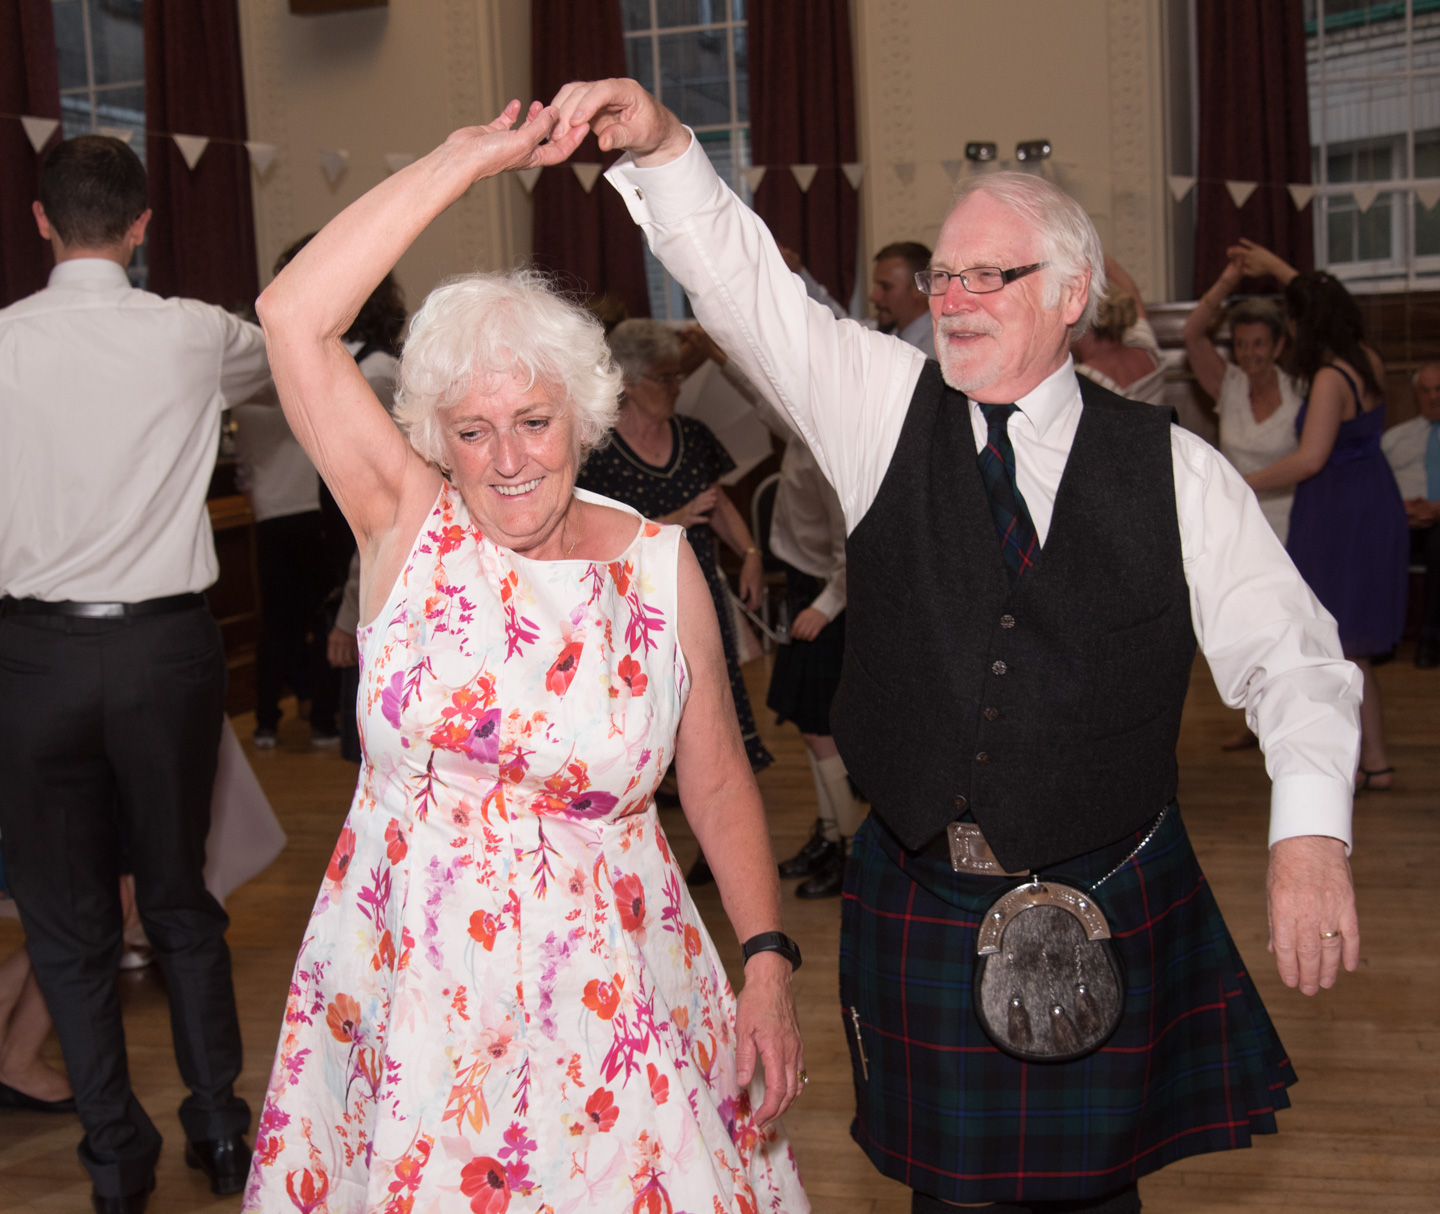 Ceilidh dancing at a wedding near Perth 2